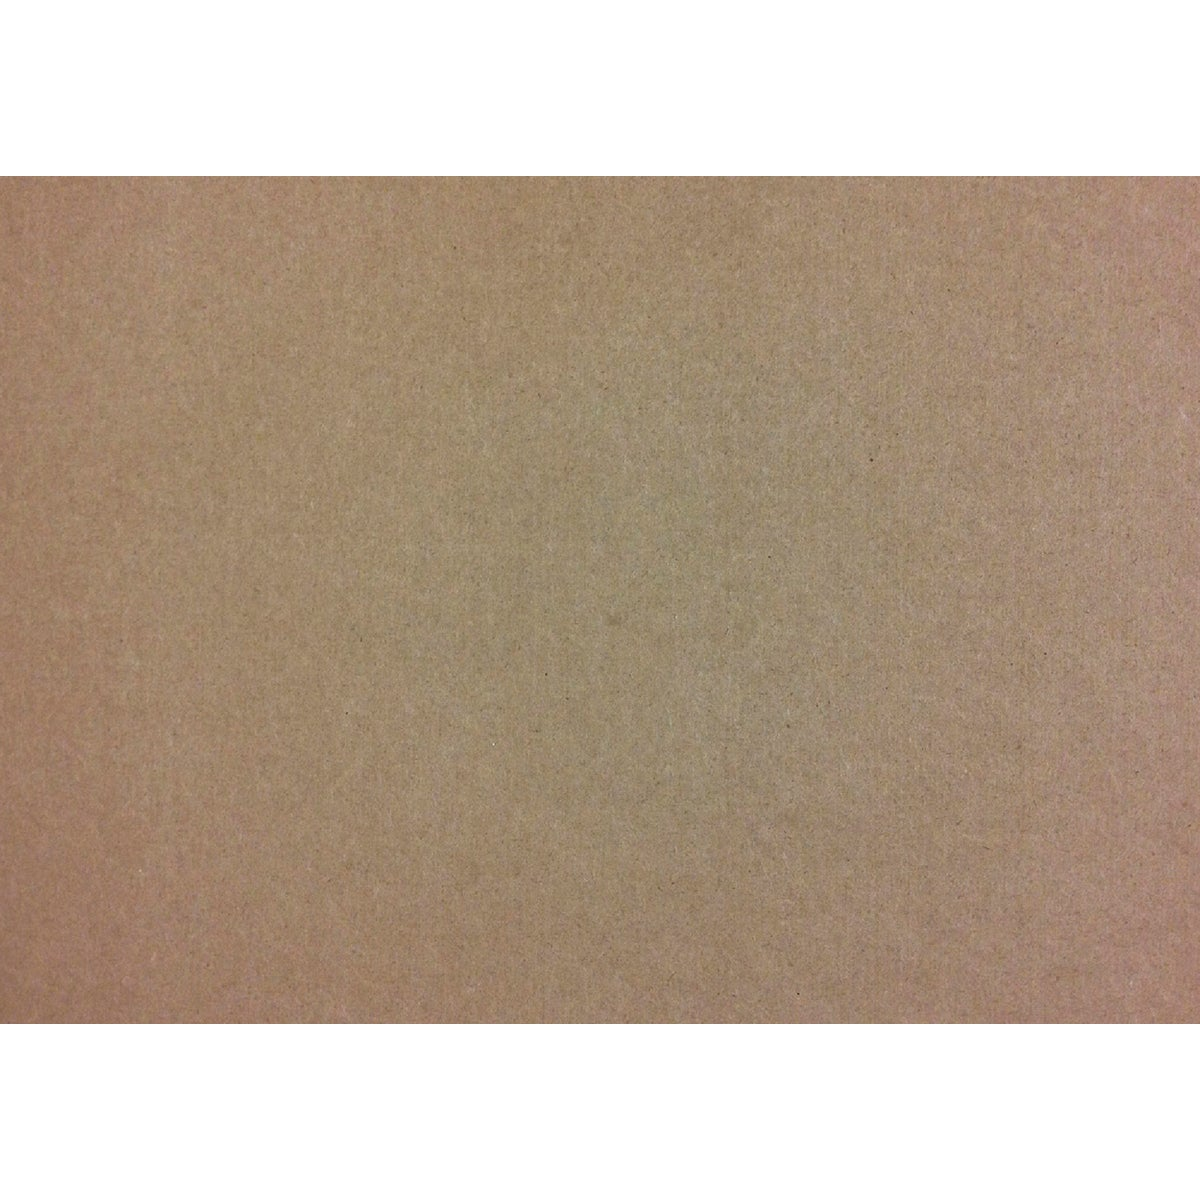 "1/2"" 24X48 MDF BOARD - 109097 by Ufpi Lbr & Treated"